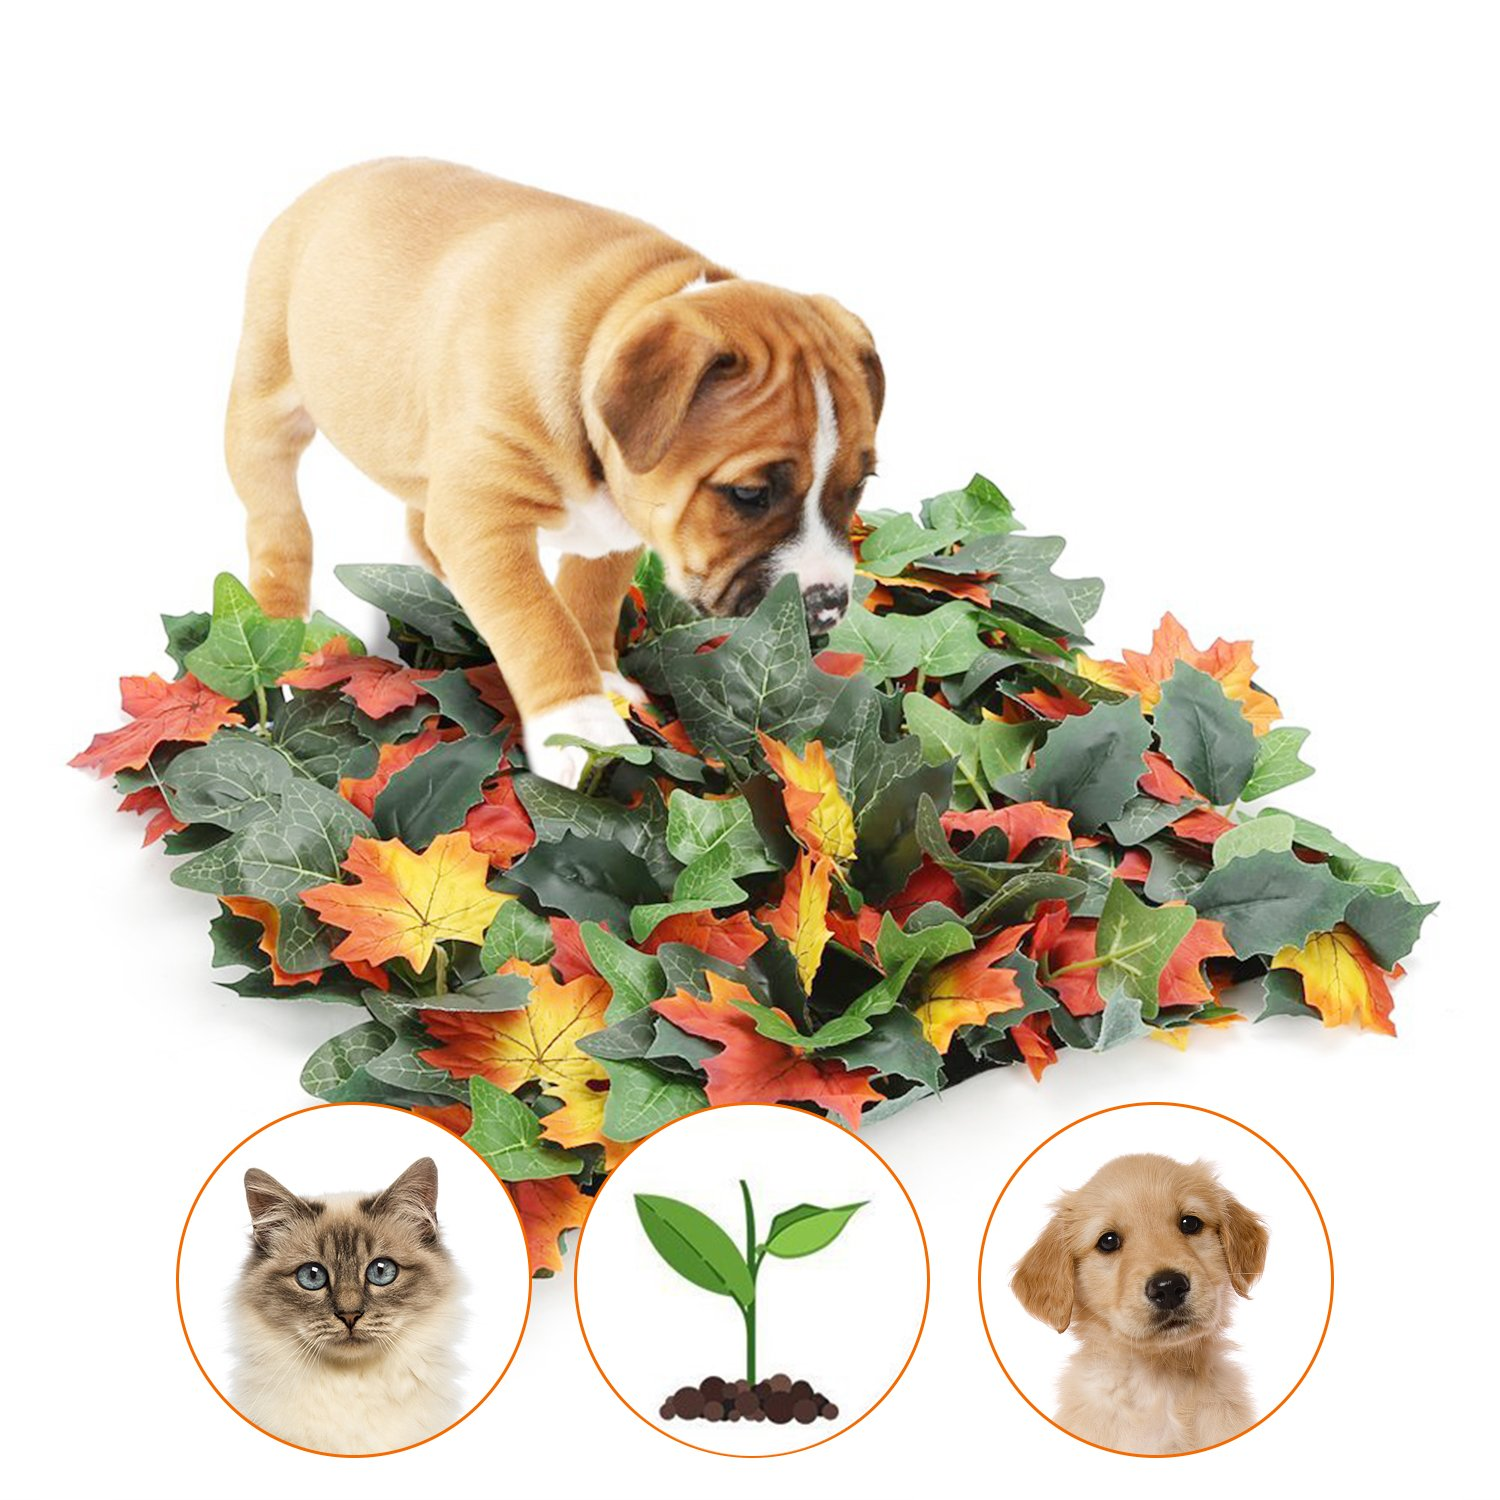 Dog Snuffle Mat Simulation Maple Leaf Feeding Mat Dog Nosework Blanket Encourages Natural Foraging Skills